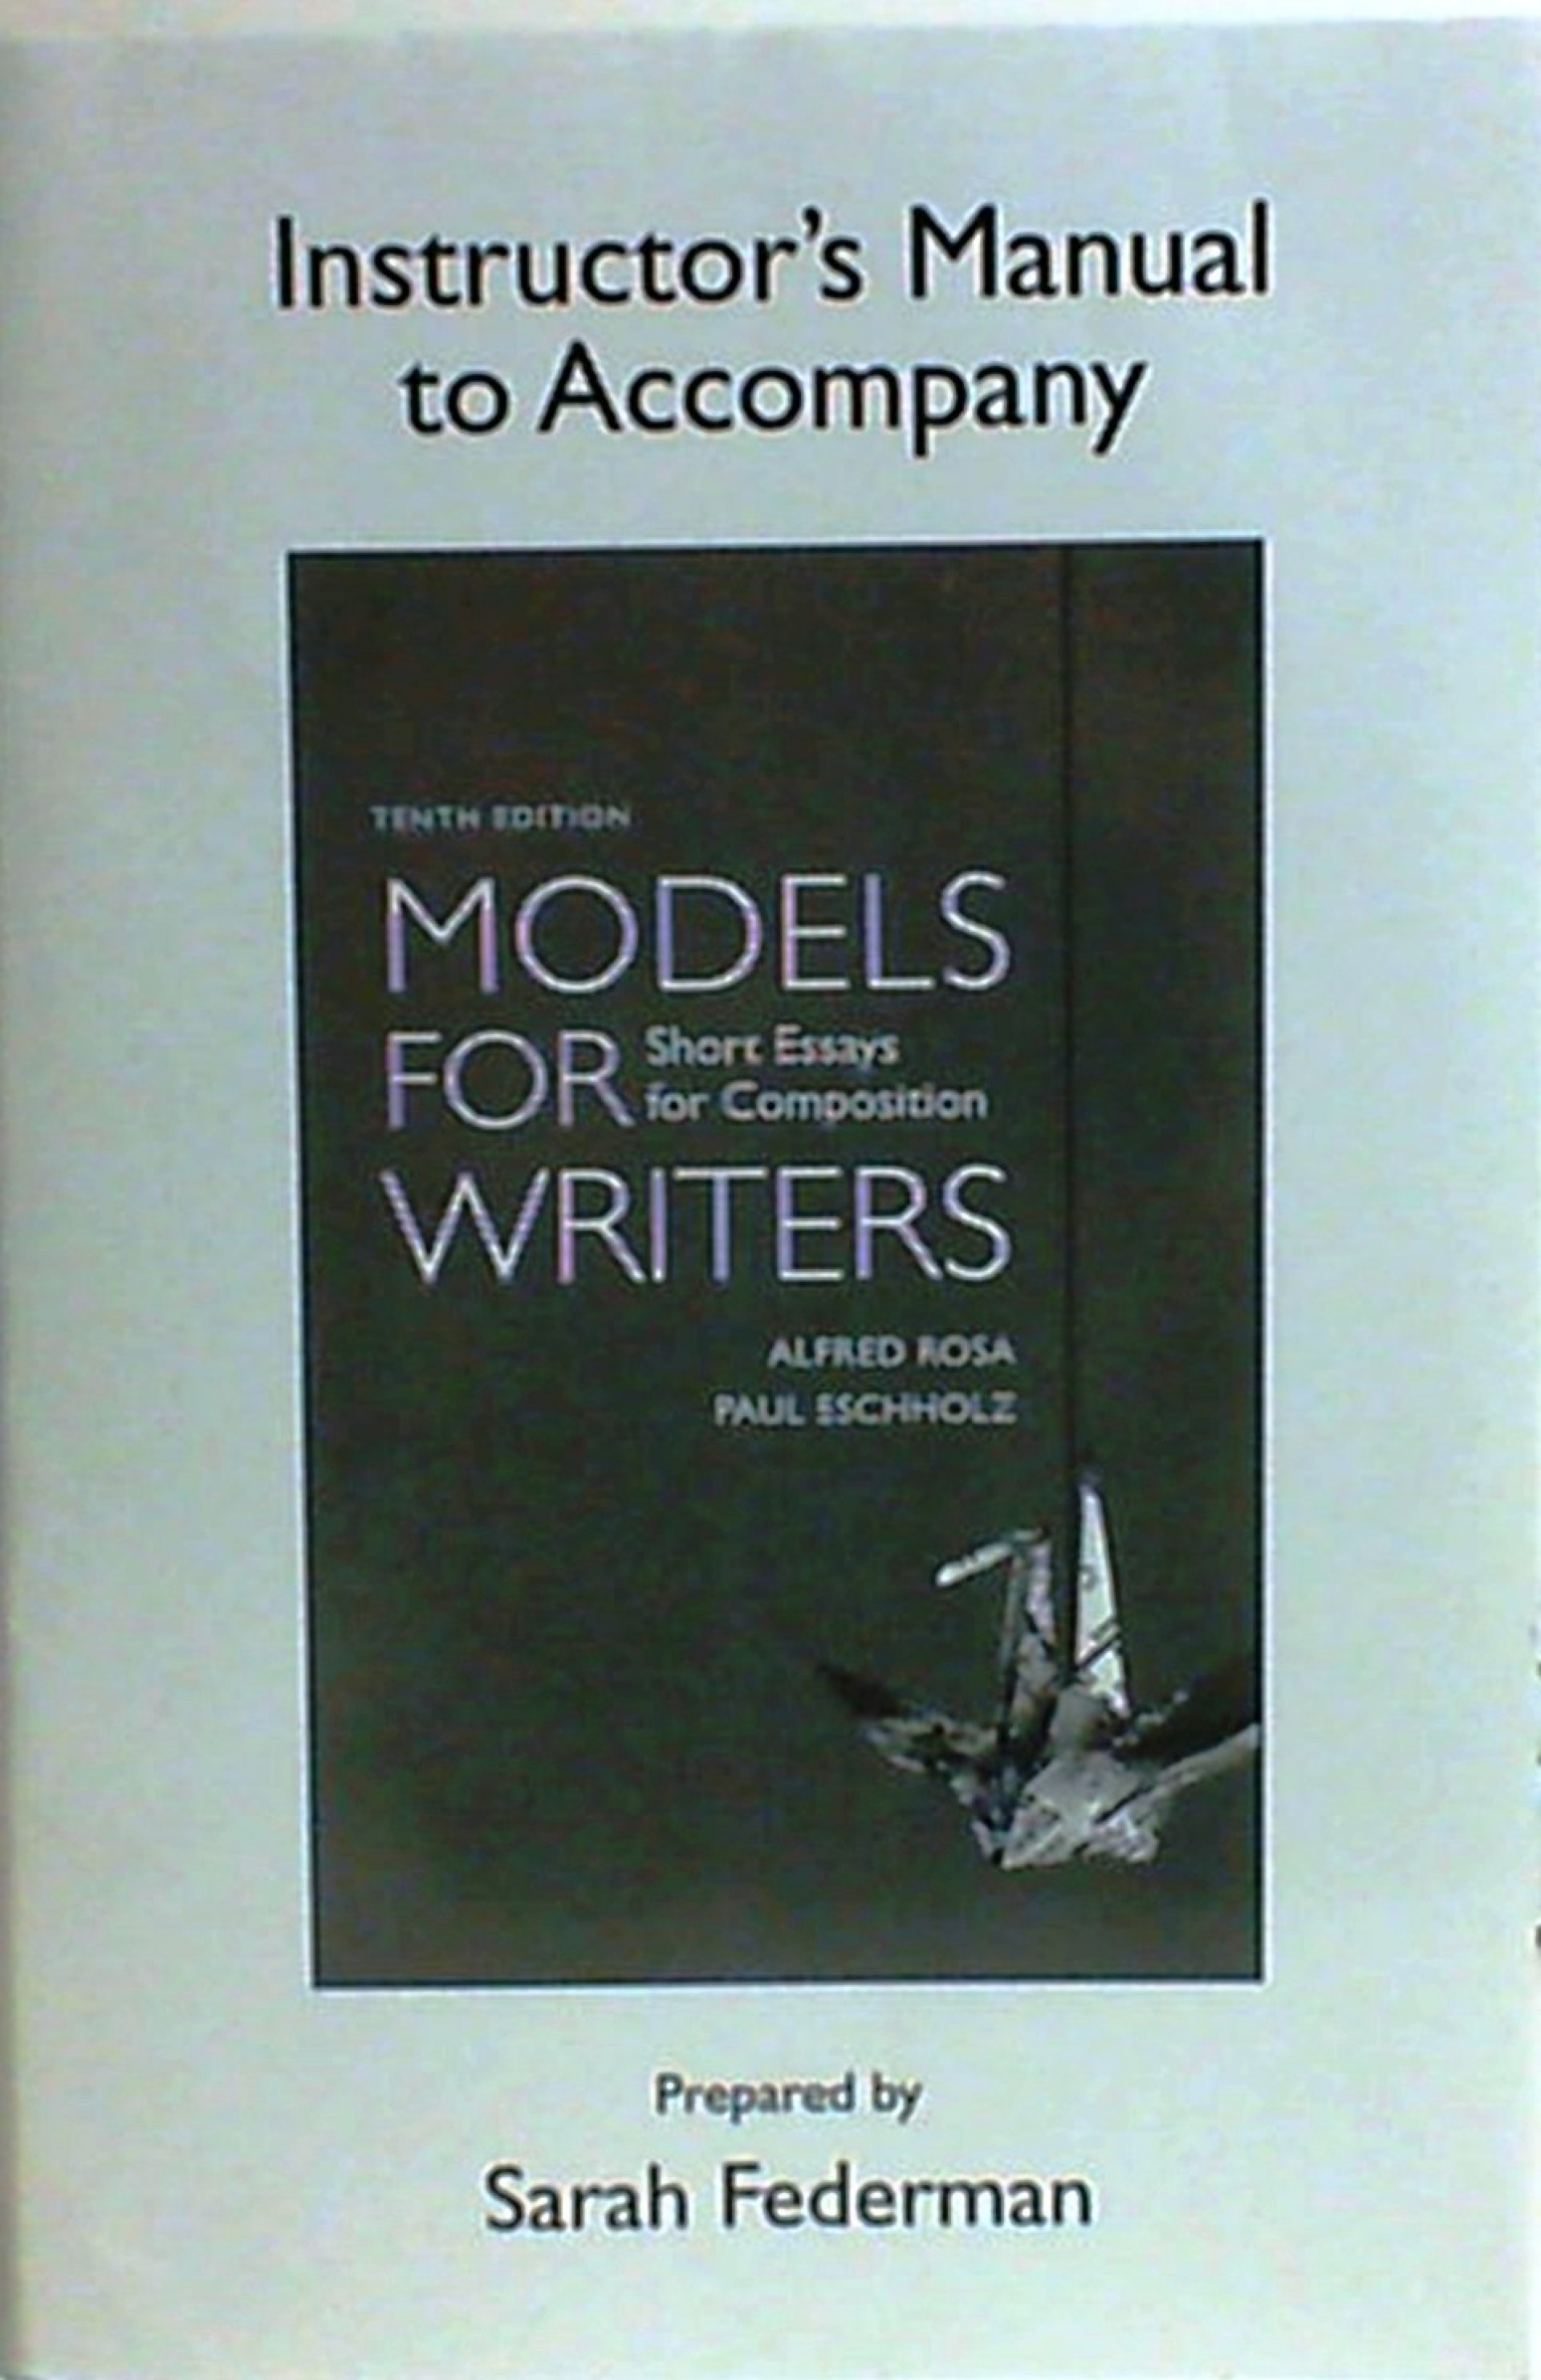 007 Models For Writers Short Essays Composition Essay Example Singular 12th Edition Pdf 13th 1920